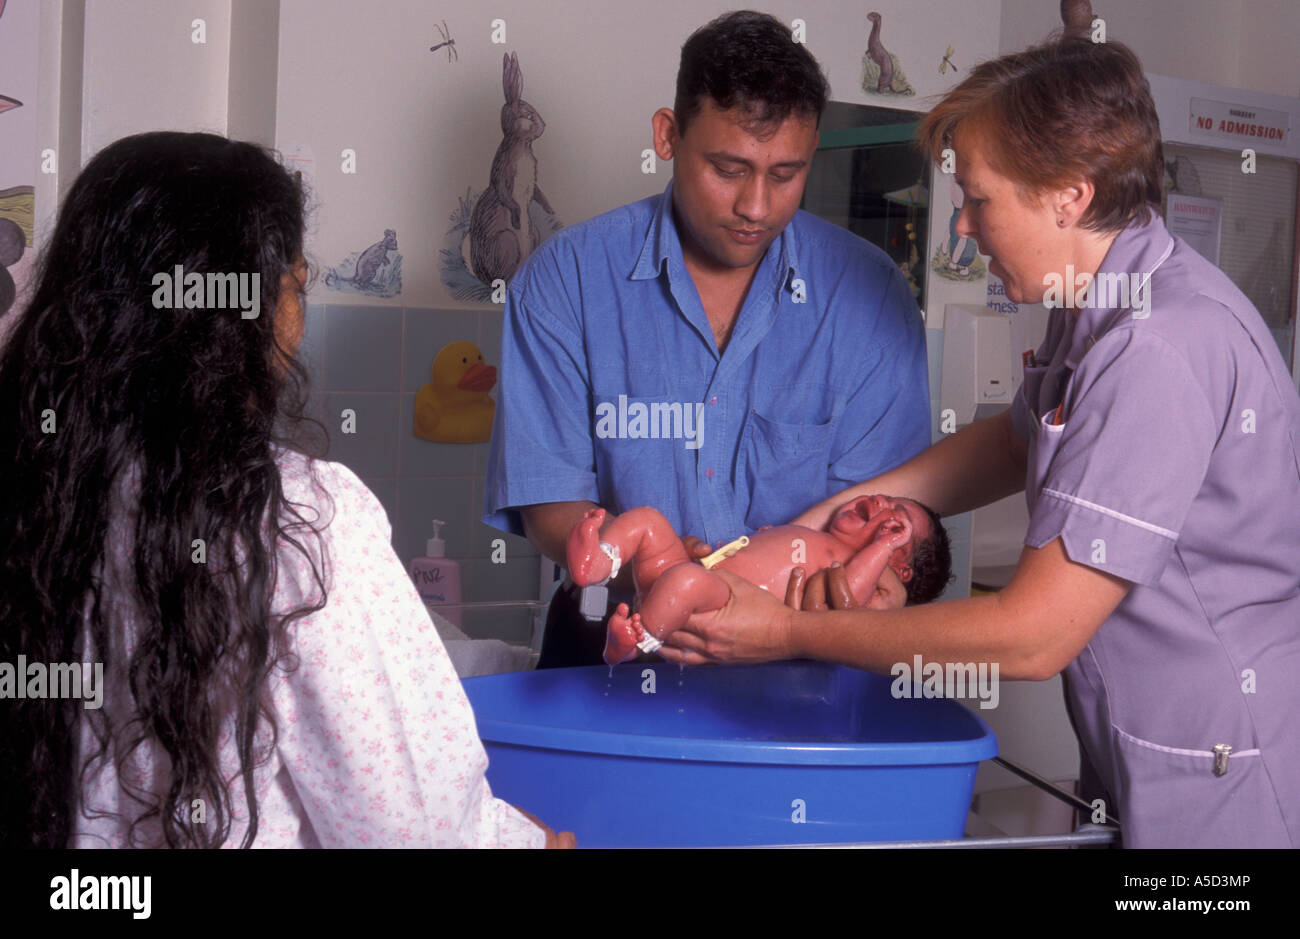 Nurse Hospital Bath Stock Photos & Nurse Hospital Bath Stock Images ...